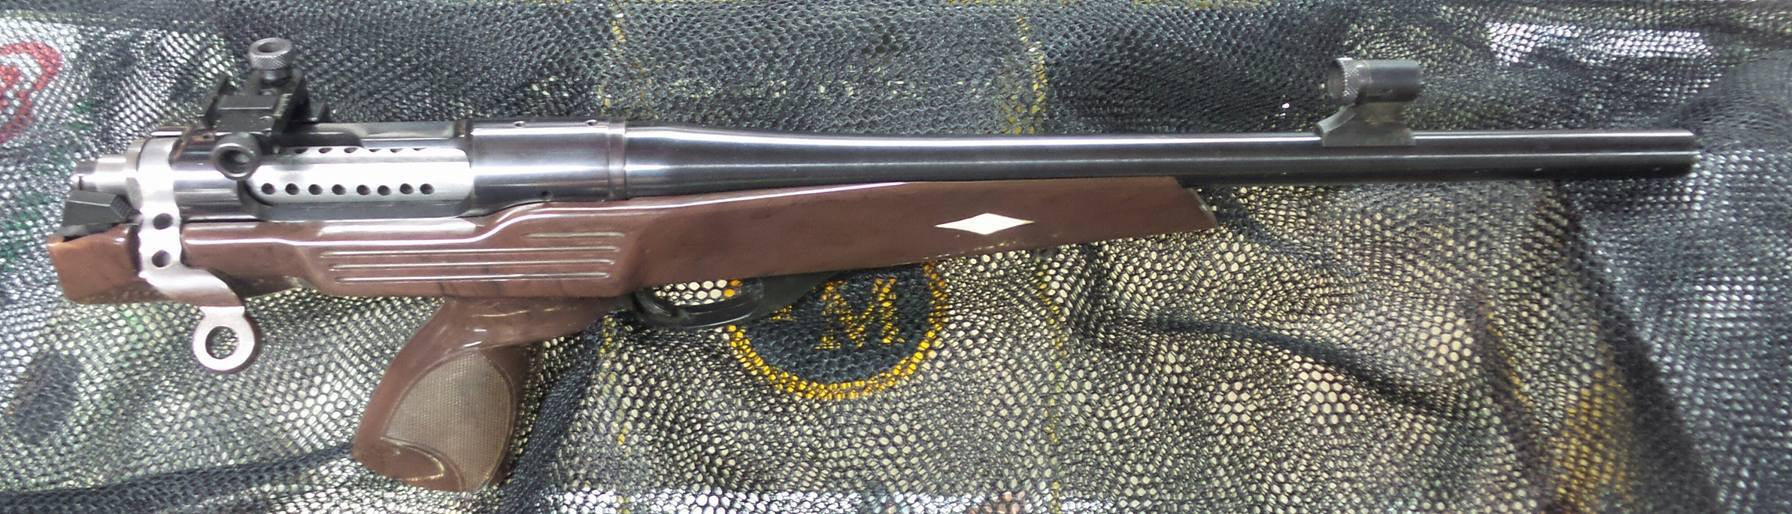 AH 16 1320 UHGP USED Remington XP100 Bolt Action Pistol, 7 mm TCU w 120 Rounds of Ammo & 2 Die Set-1792×514. $500